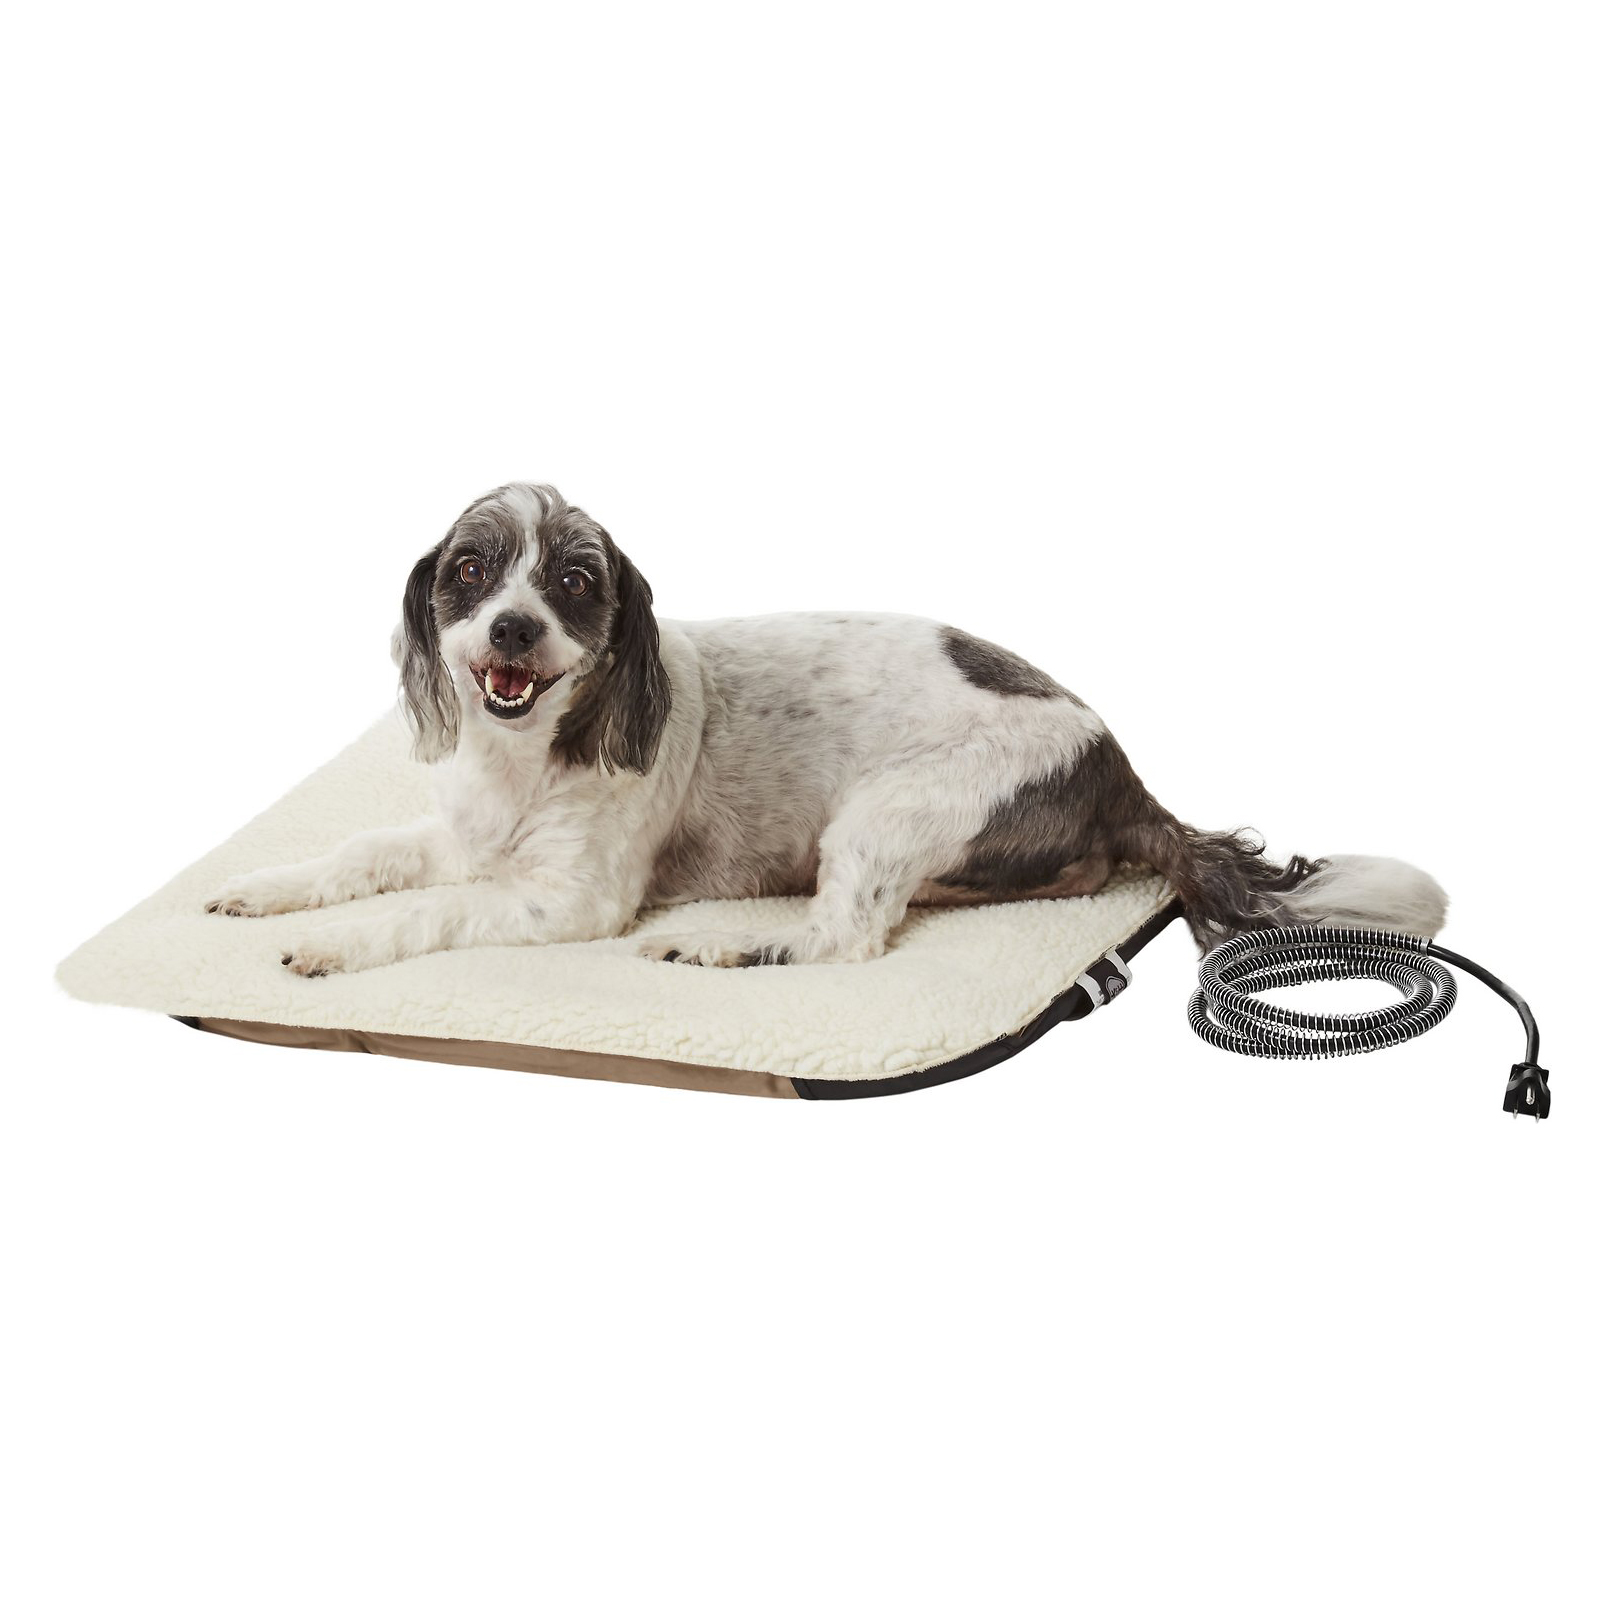 k-and-h-pet-products-outdoor-heated-pet-bed